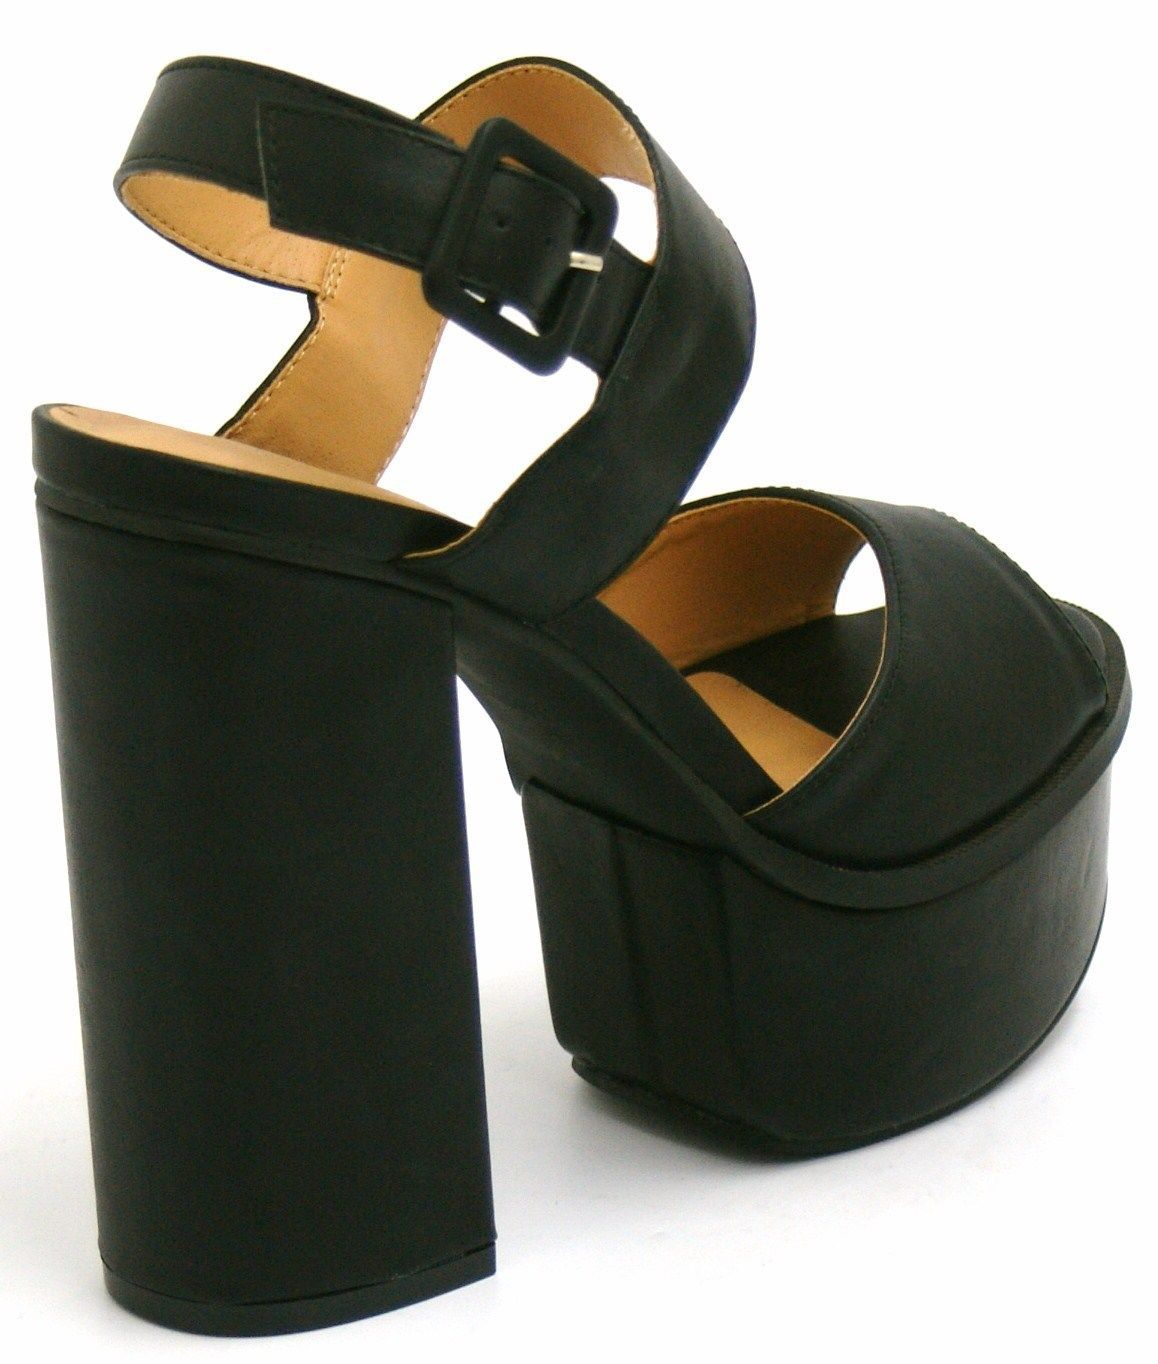 Ladies High Heel shoes - Sexy High Heels FrizeMedia